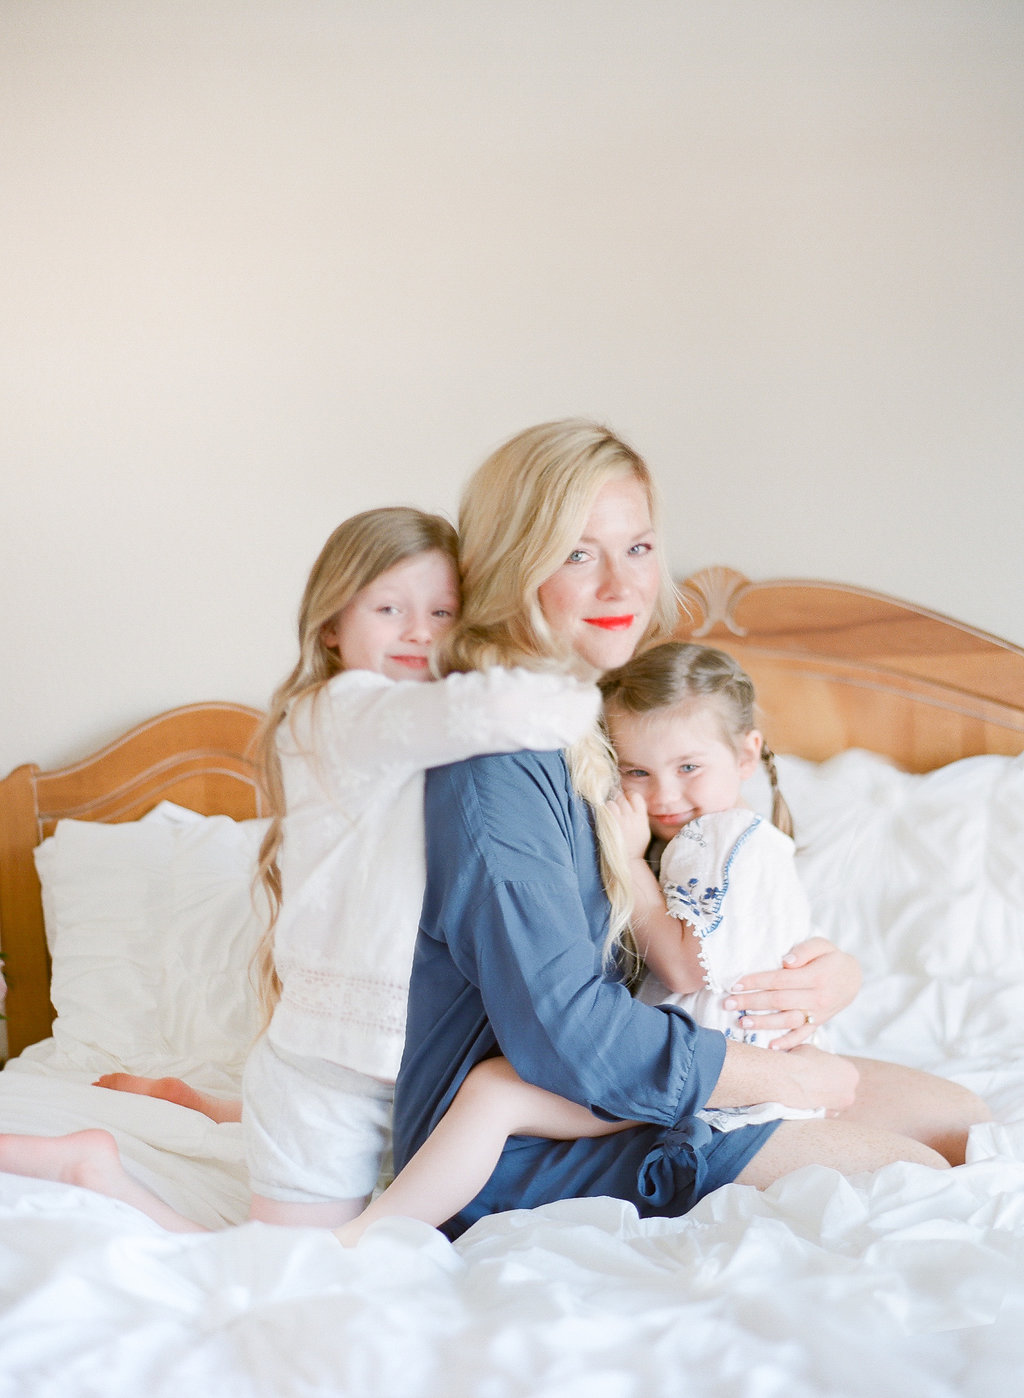 lifestyle family photo session by film photographer Tara Cronin